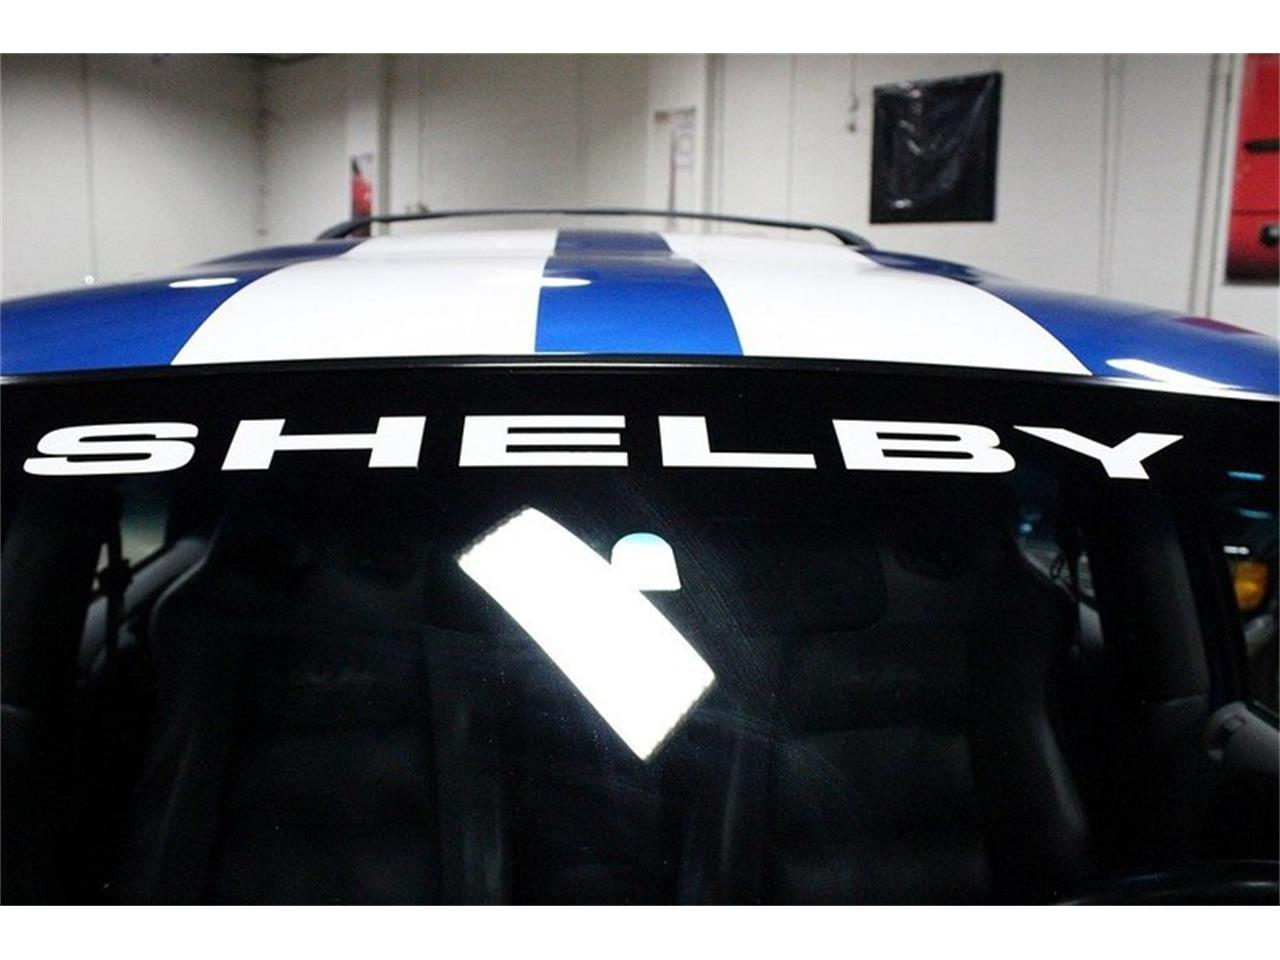 Large Picture of 1999 Dodge Durango Shelby SP-360 located in Kentwood Michigan - $31,900.00 - MB1Y